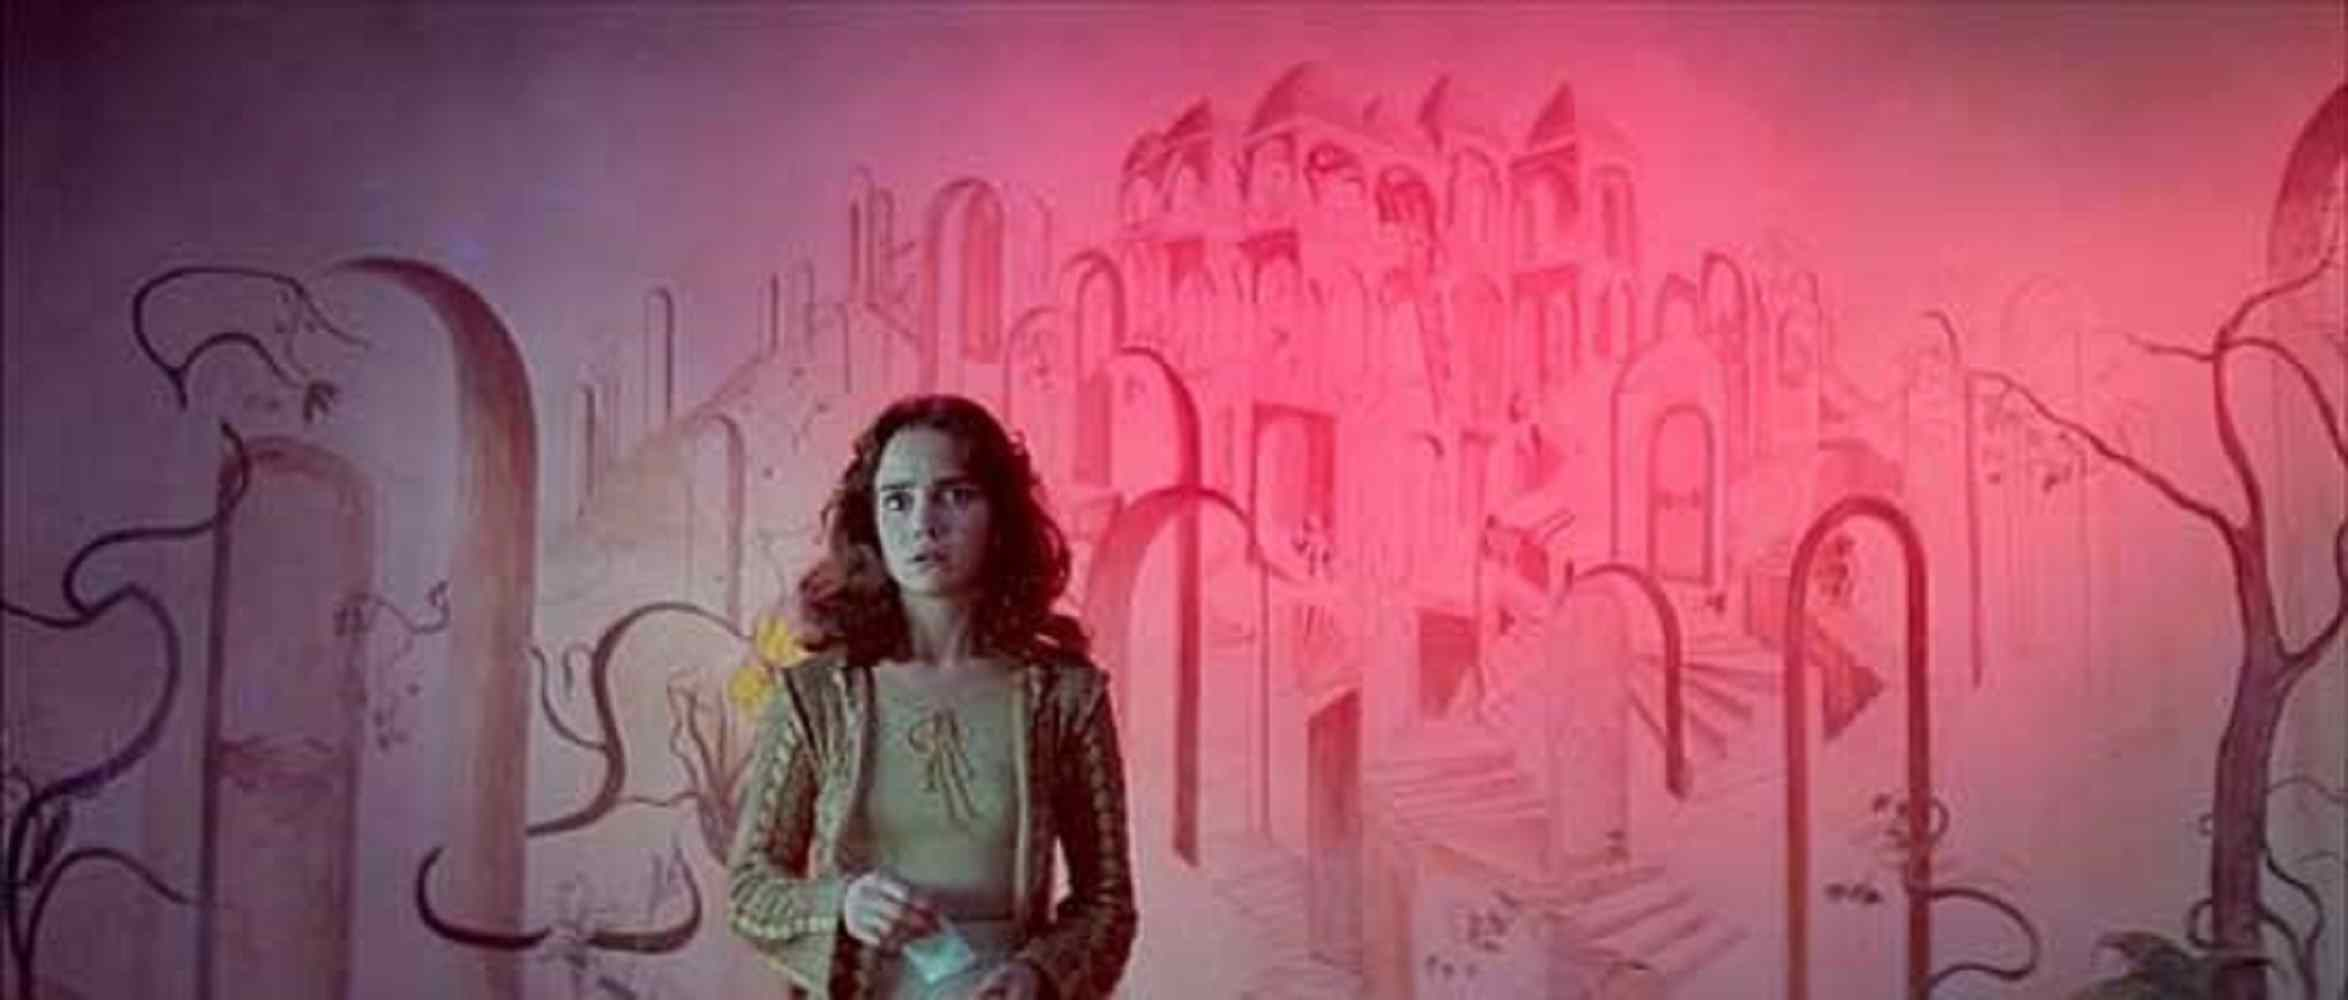 Jessica Harper playing Suzy, outside the witches lair in Dario Argento's Suspiria.